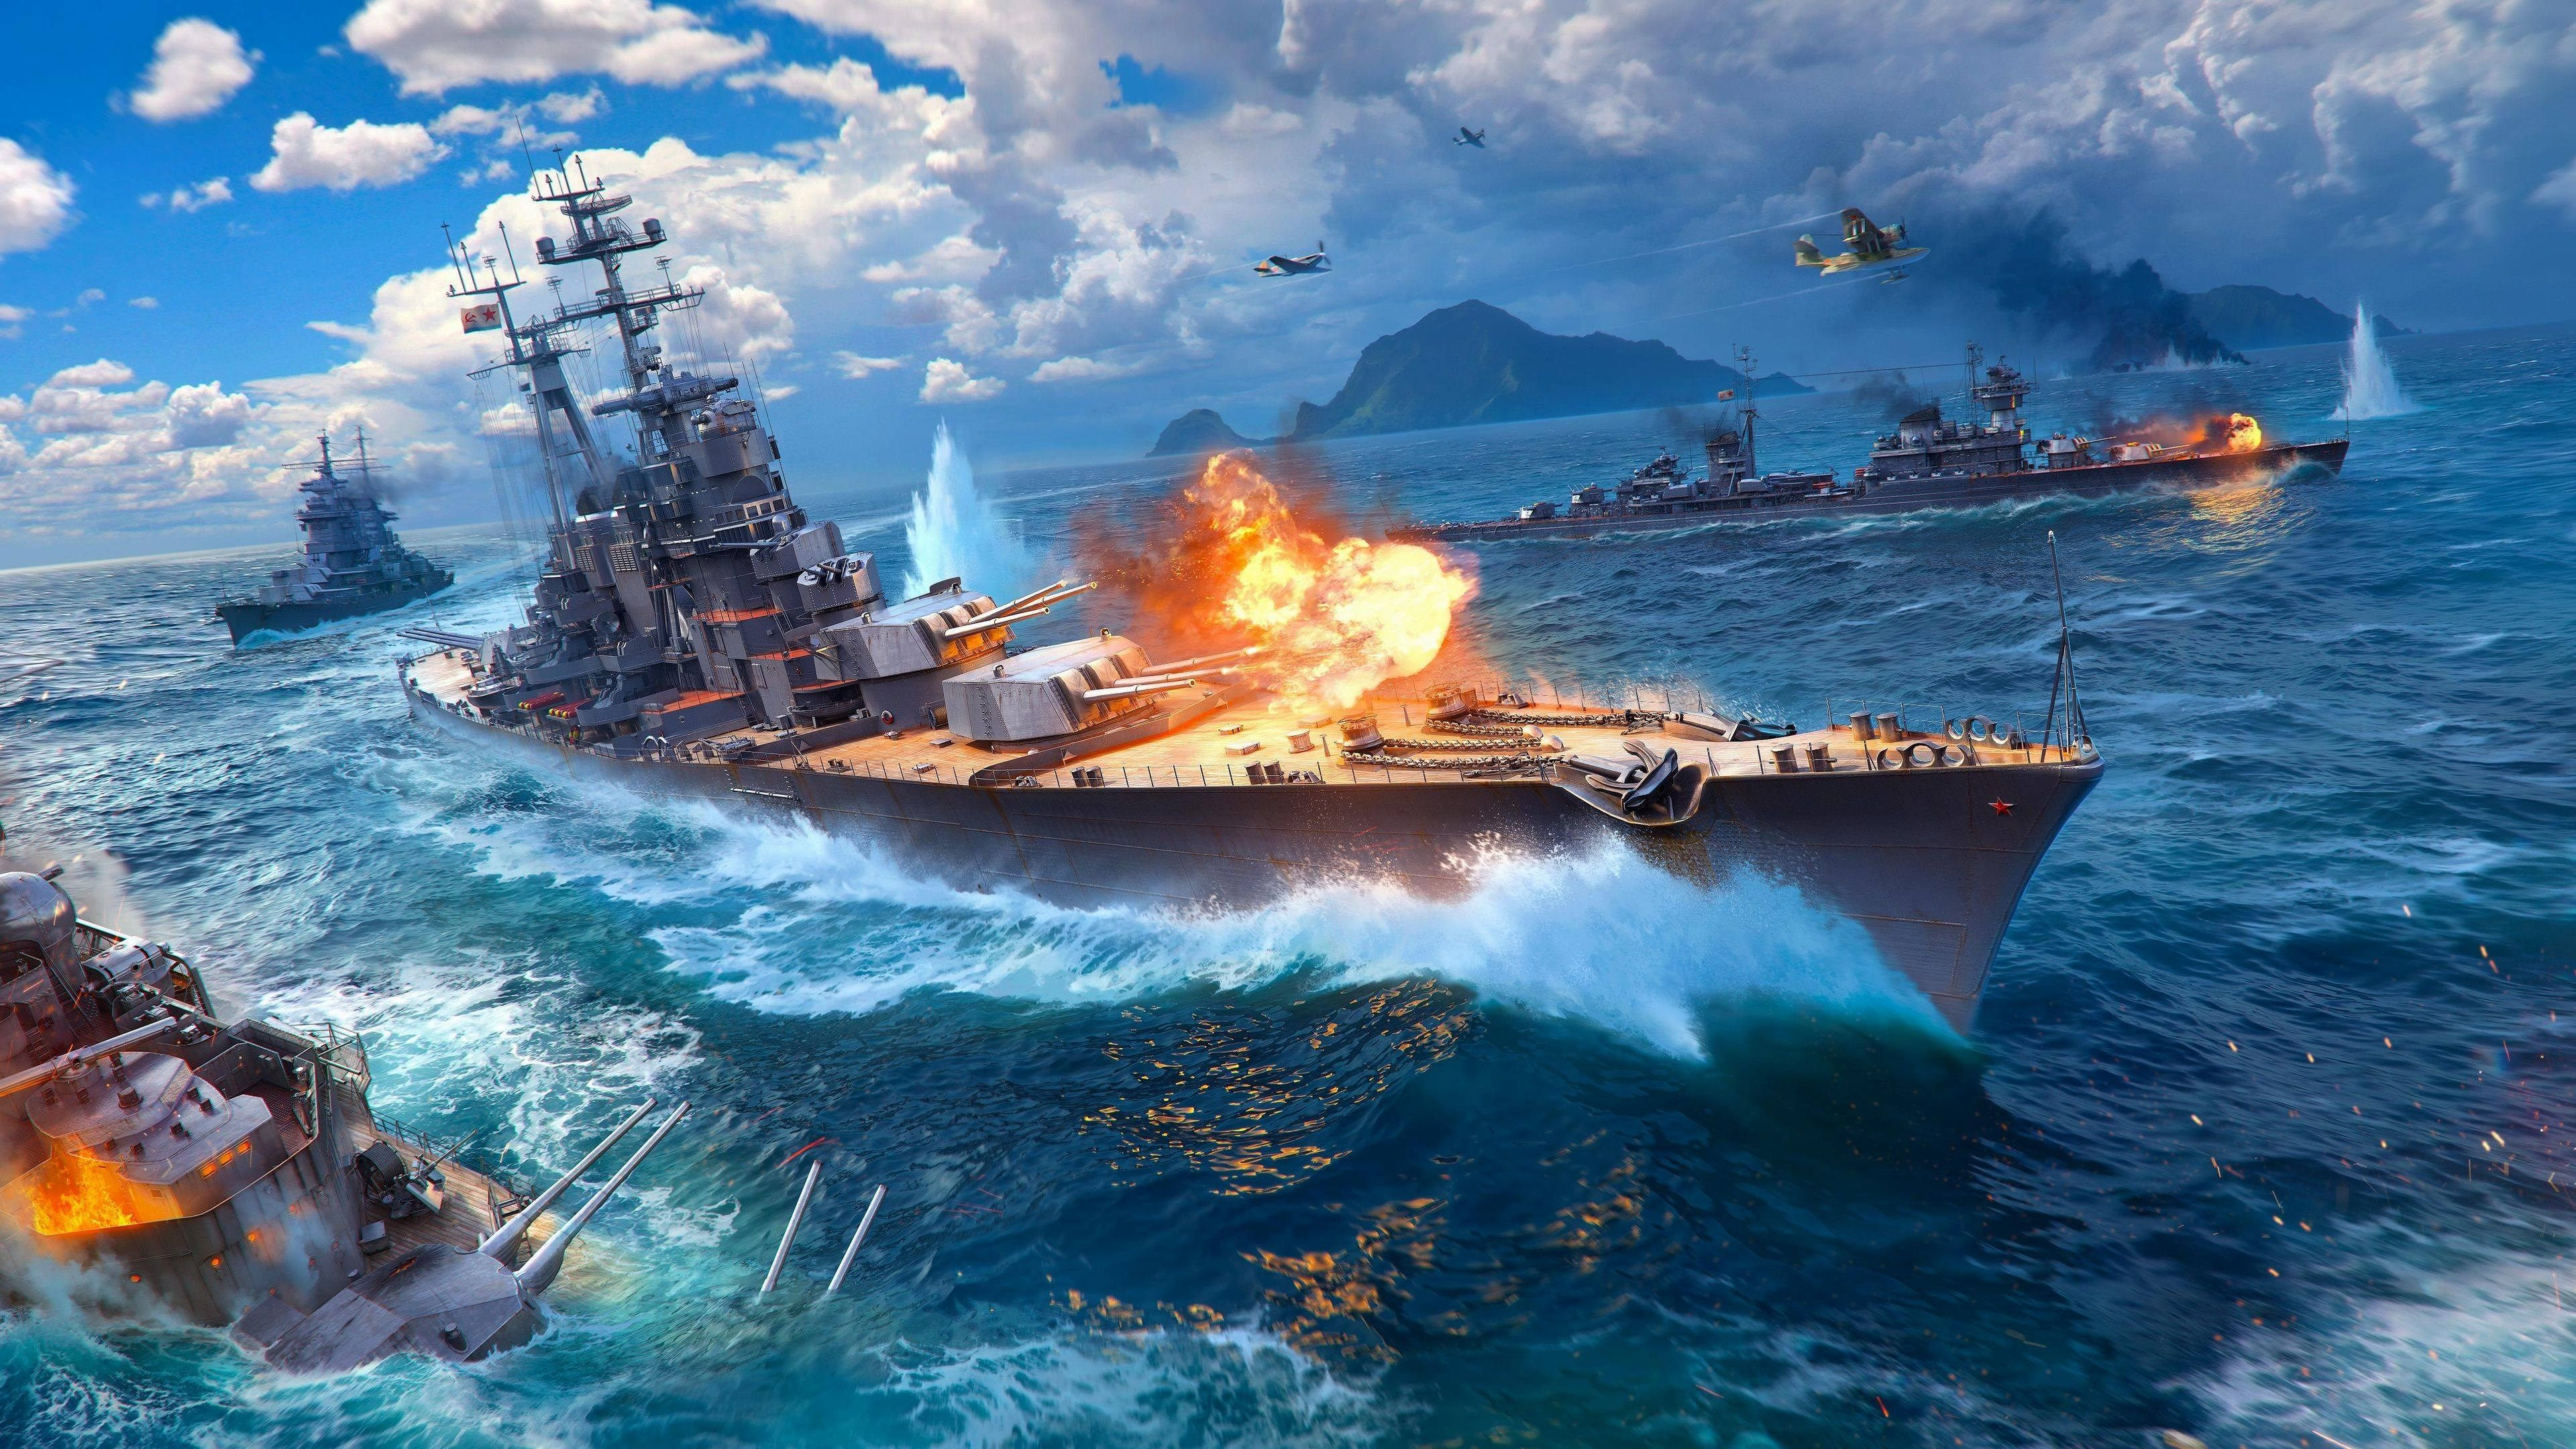 World Of Warship Game Wallpaper Free Download For Desktoptitlemeta